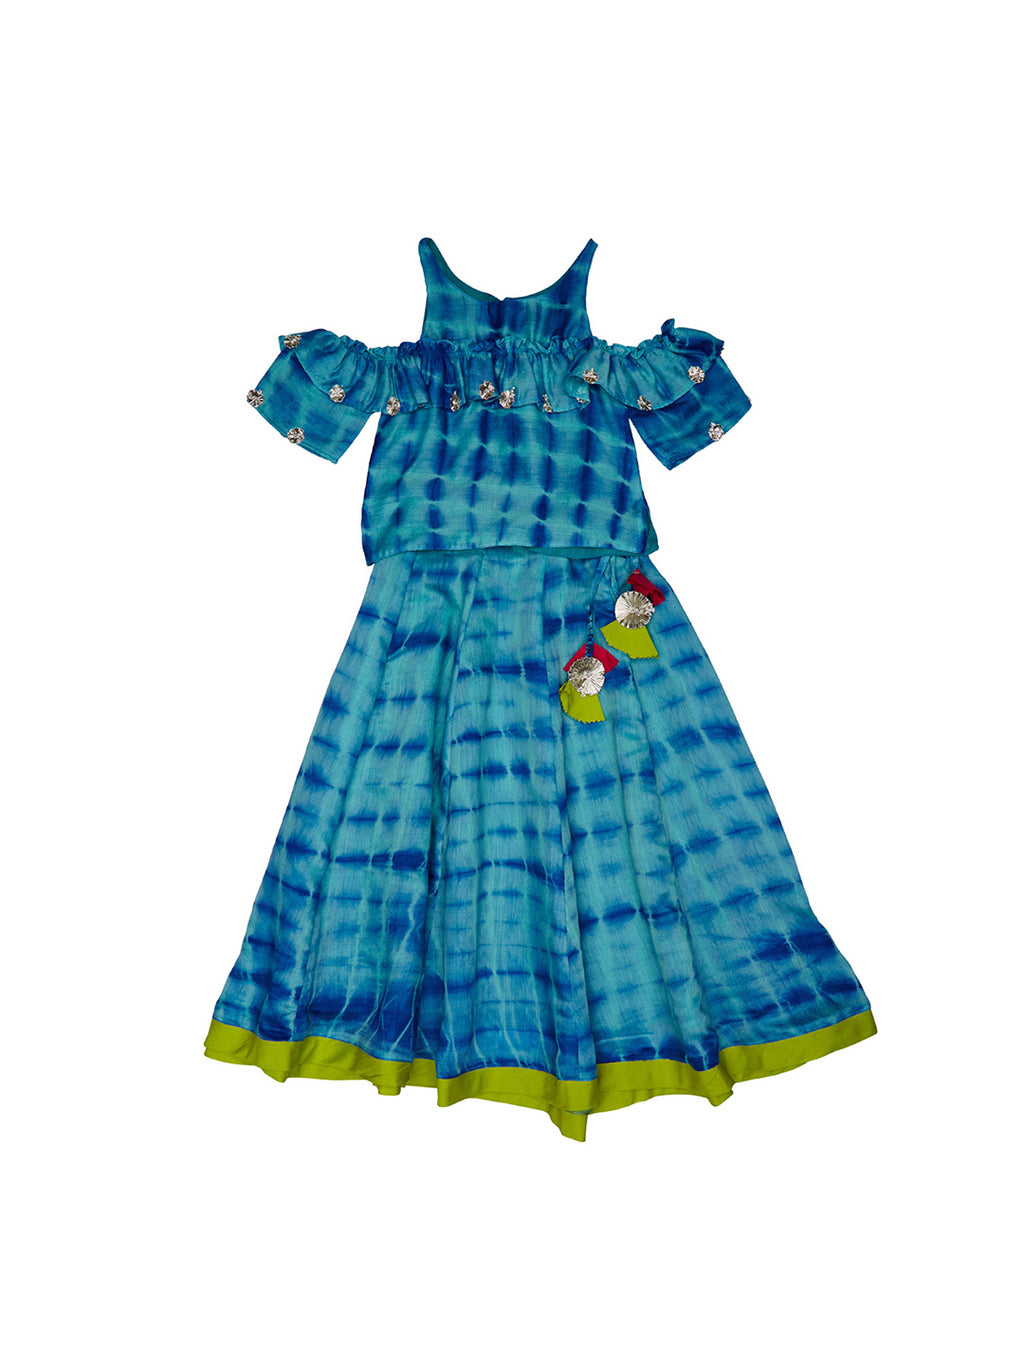 blue cold shoulder tie-dye lehenga set